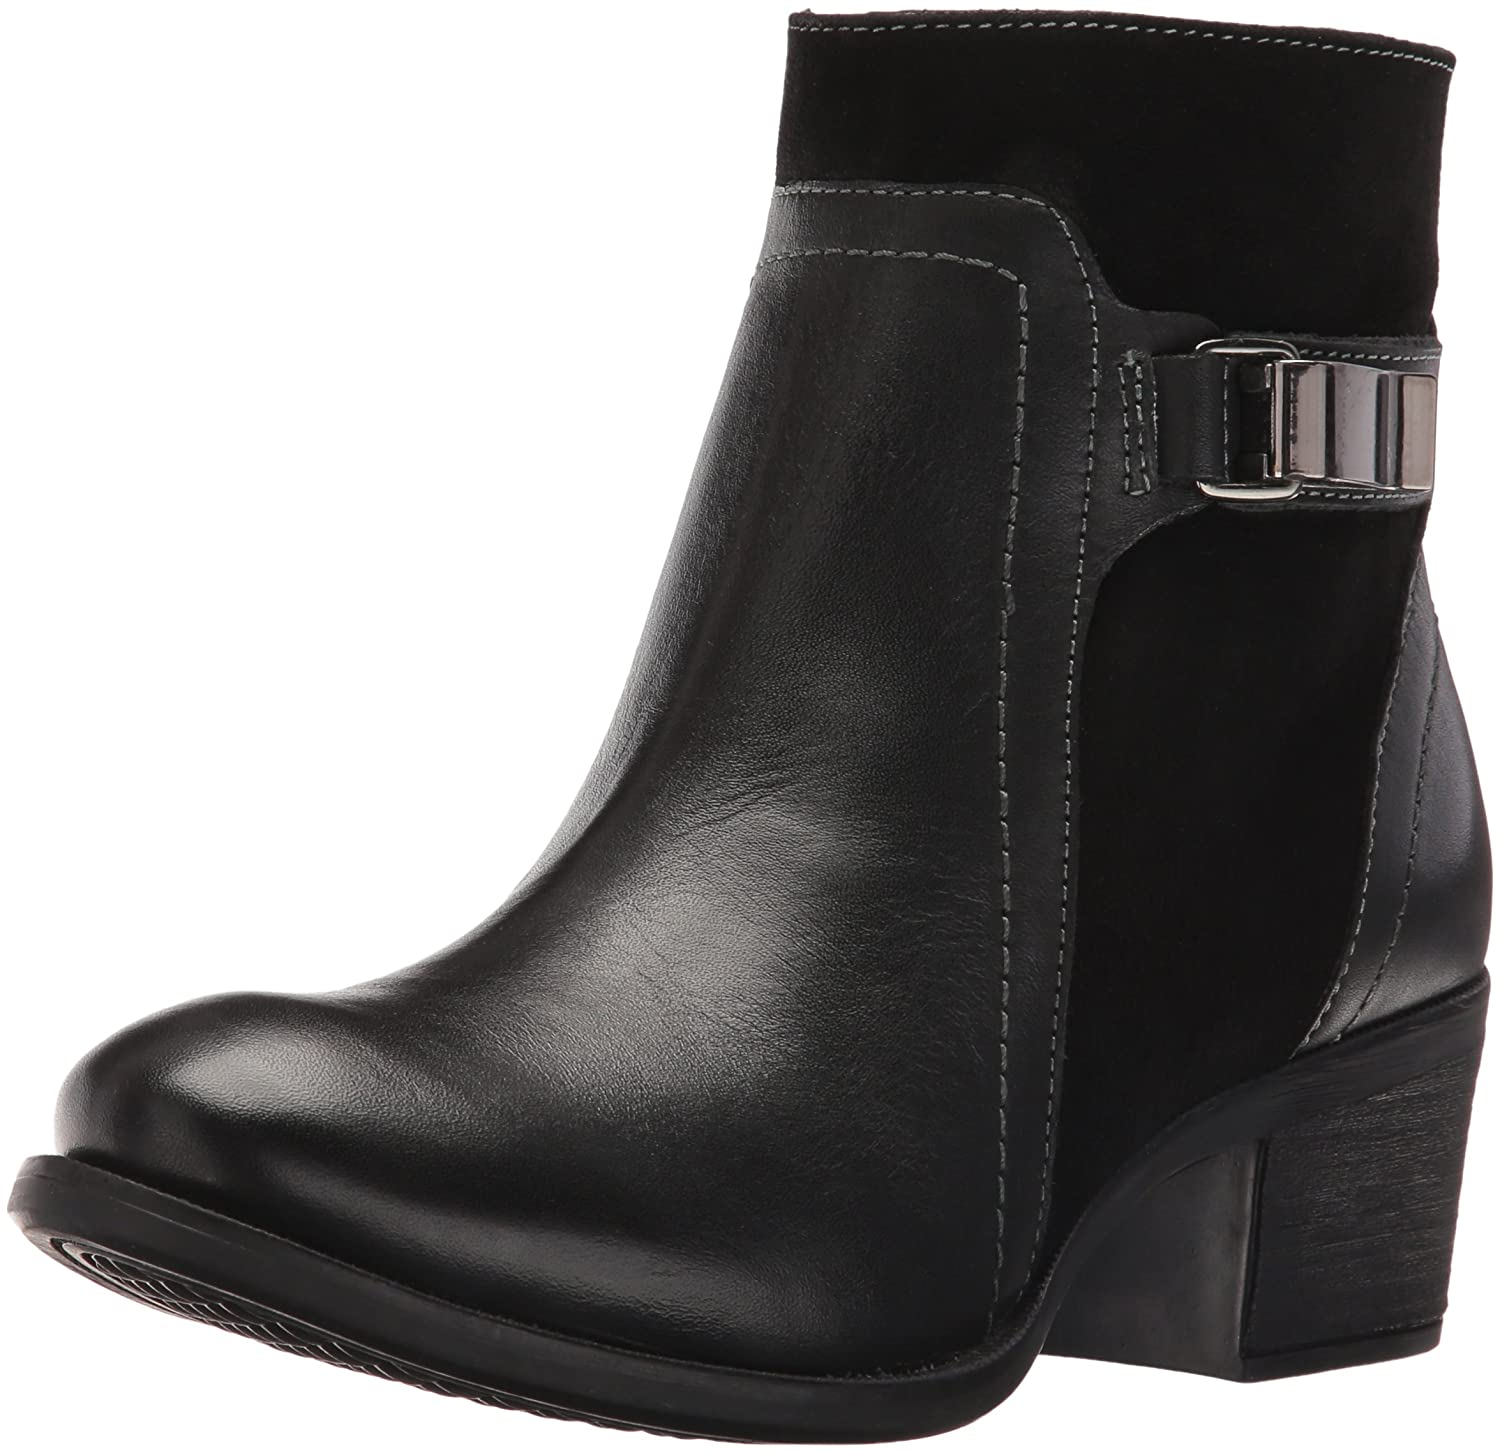 Hush Puppies Women's Fondly Nellie Western Boot B019X7QO28 6 B(M) US|Black Leather/Suede